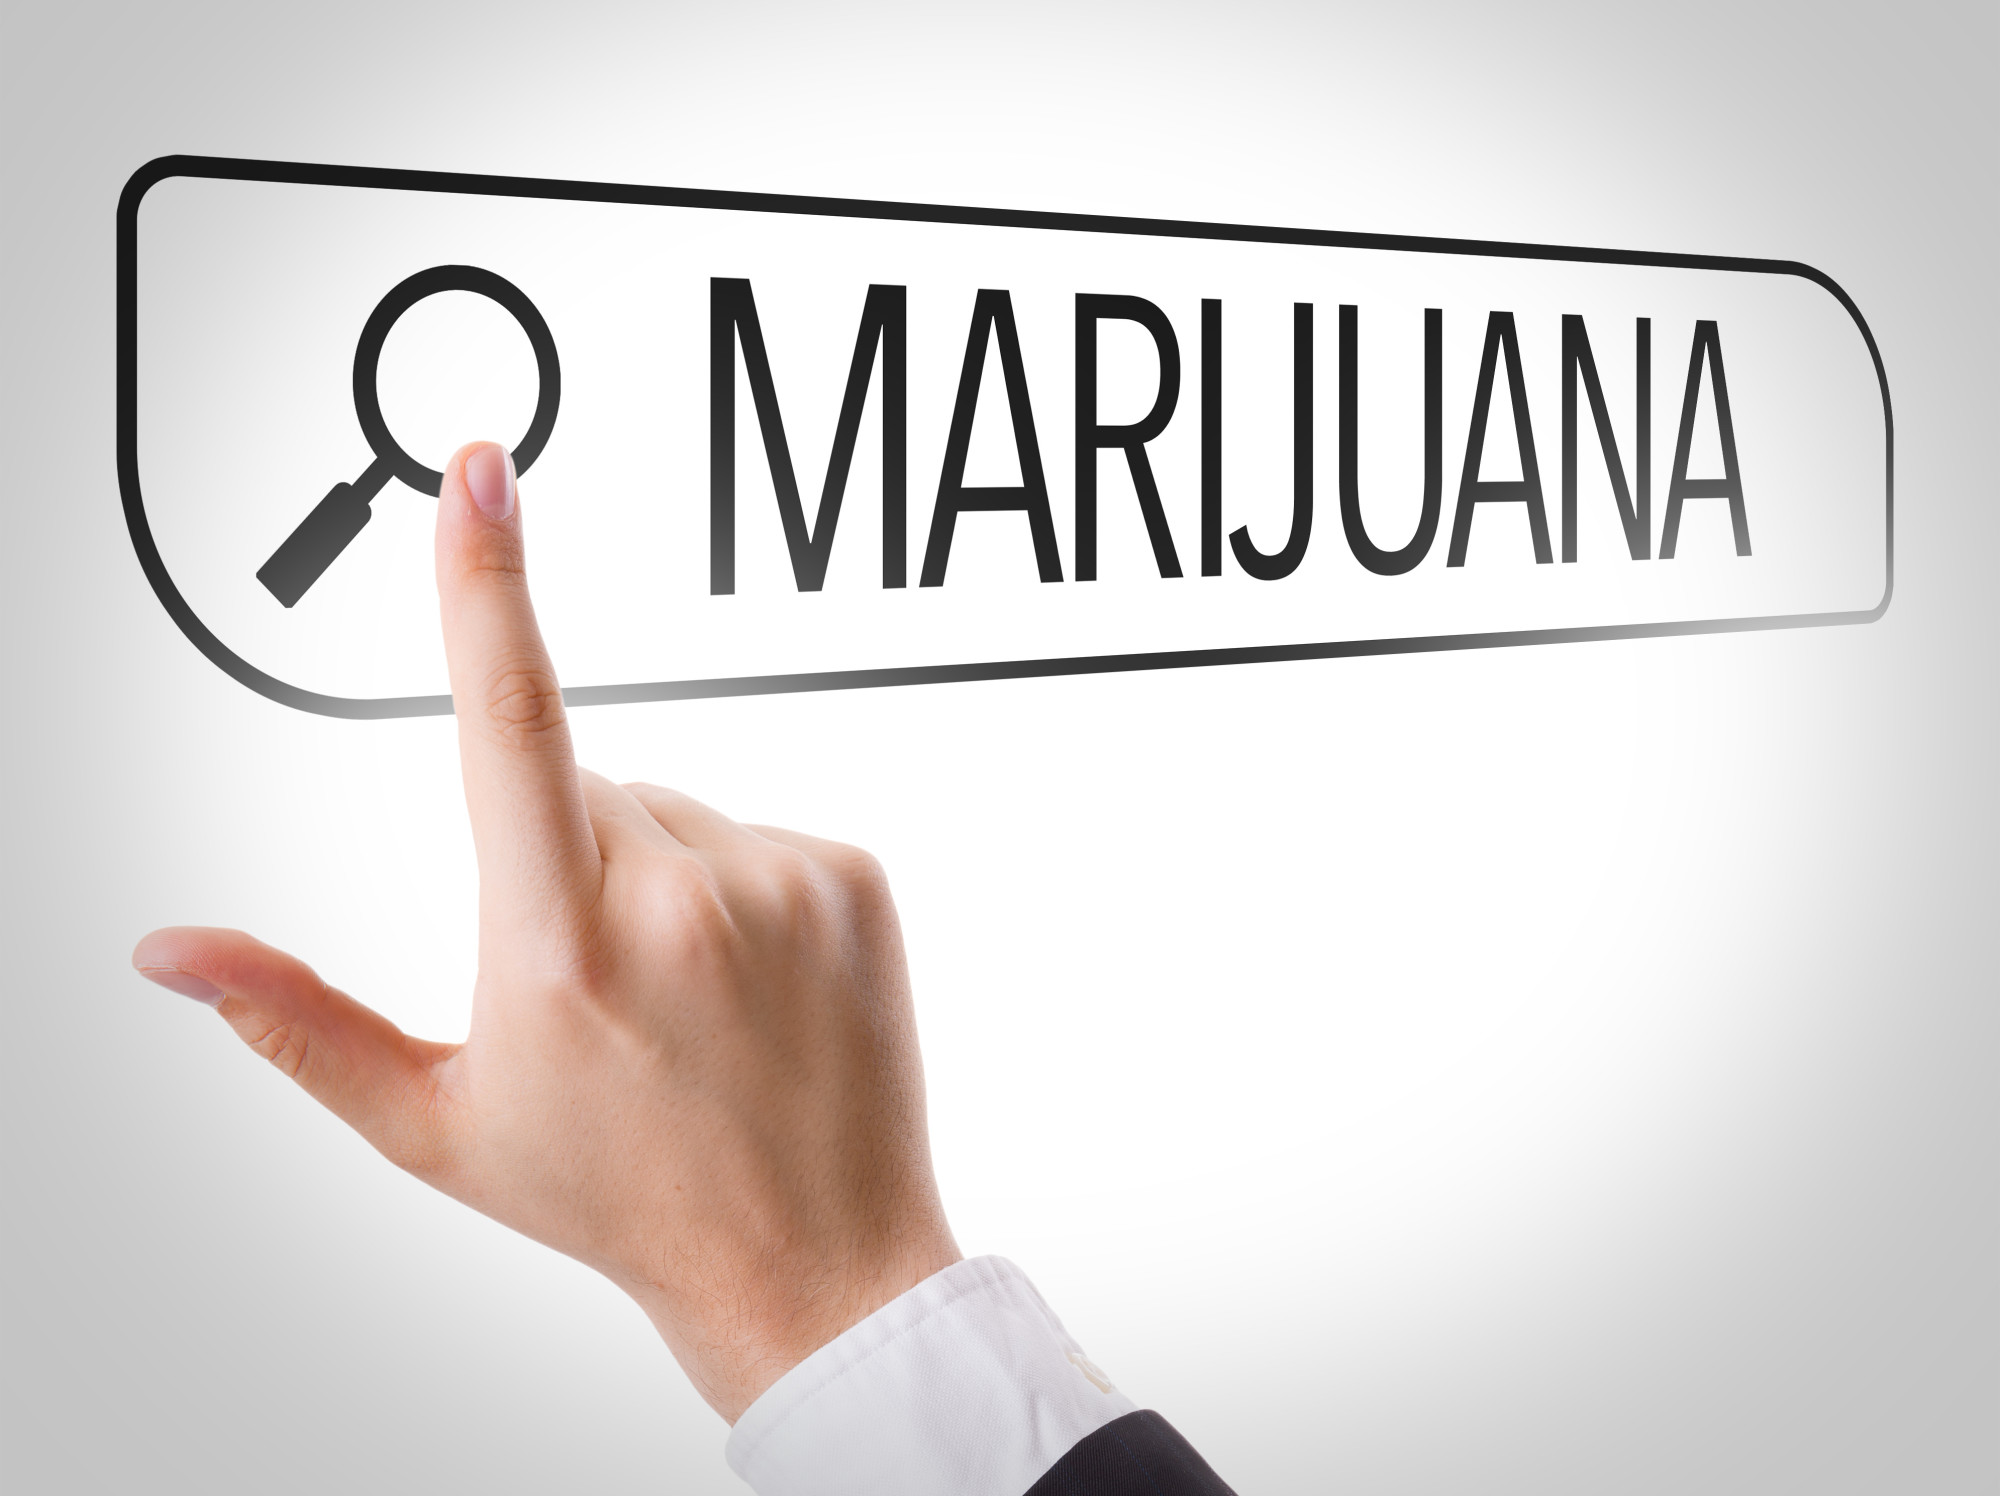 Online stores can provide the right cannabis for your needs if you know your options. Here are factors to consider when choosing online cannabis stores.